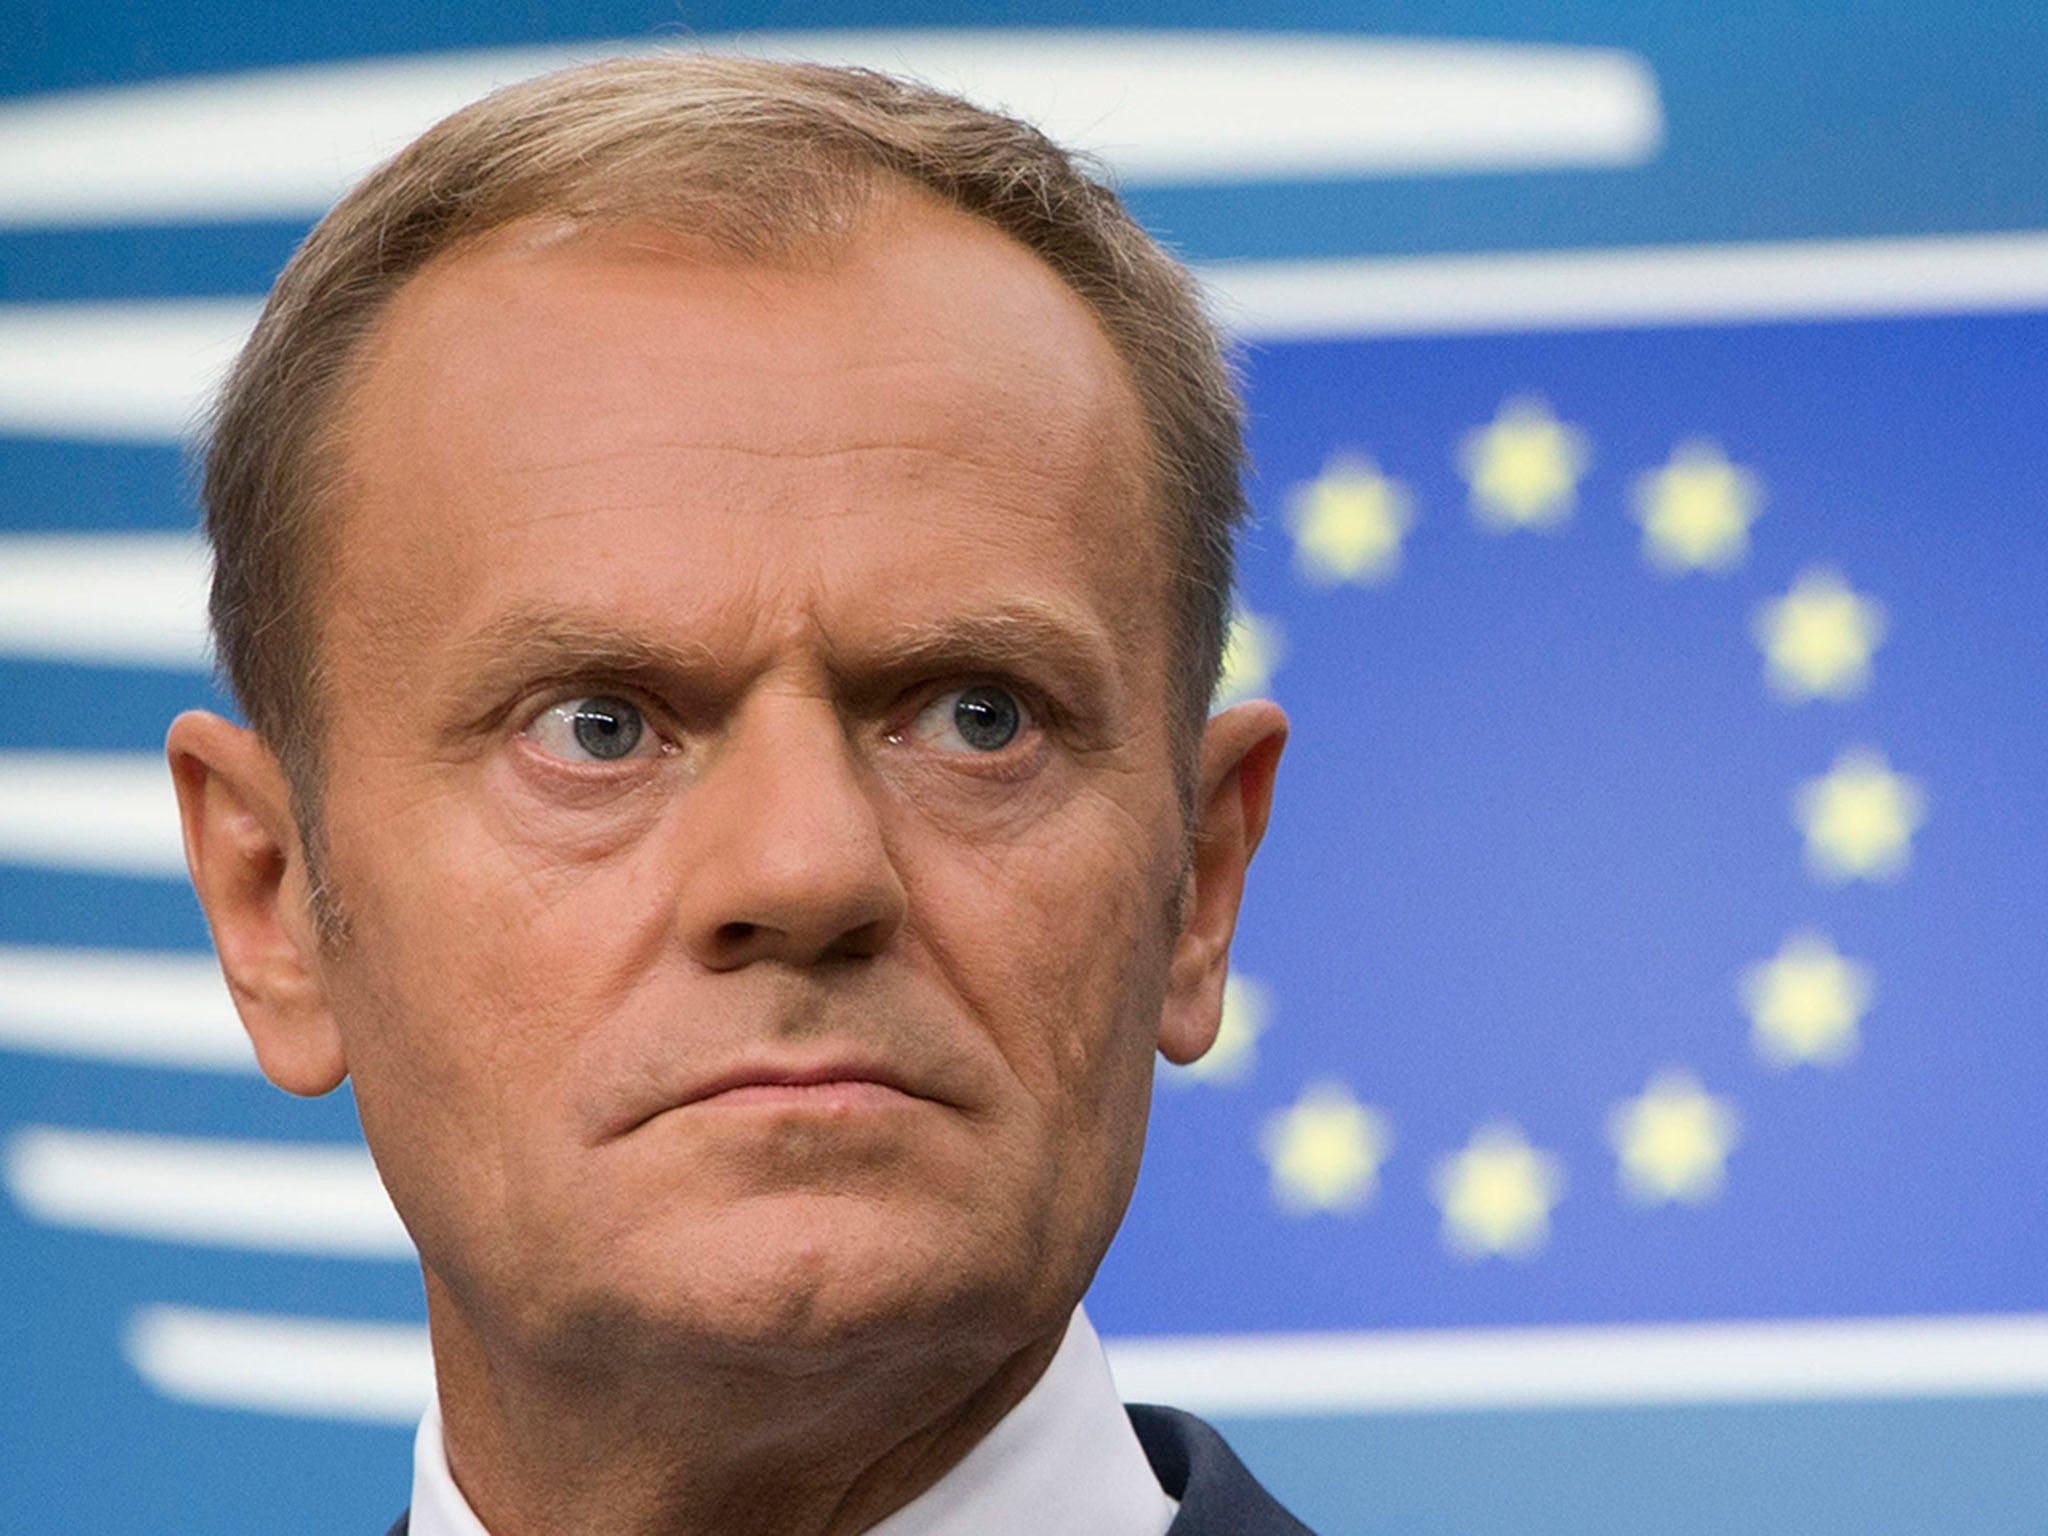 Brexit: Donald Tusk agrees to meet Theresa May amid stalled talks and resignation of top UK adviser